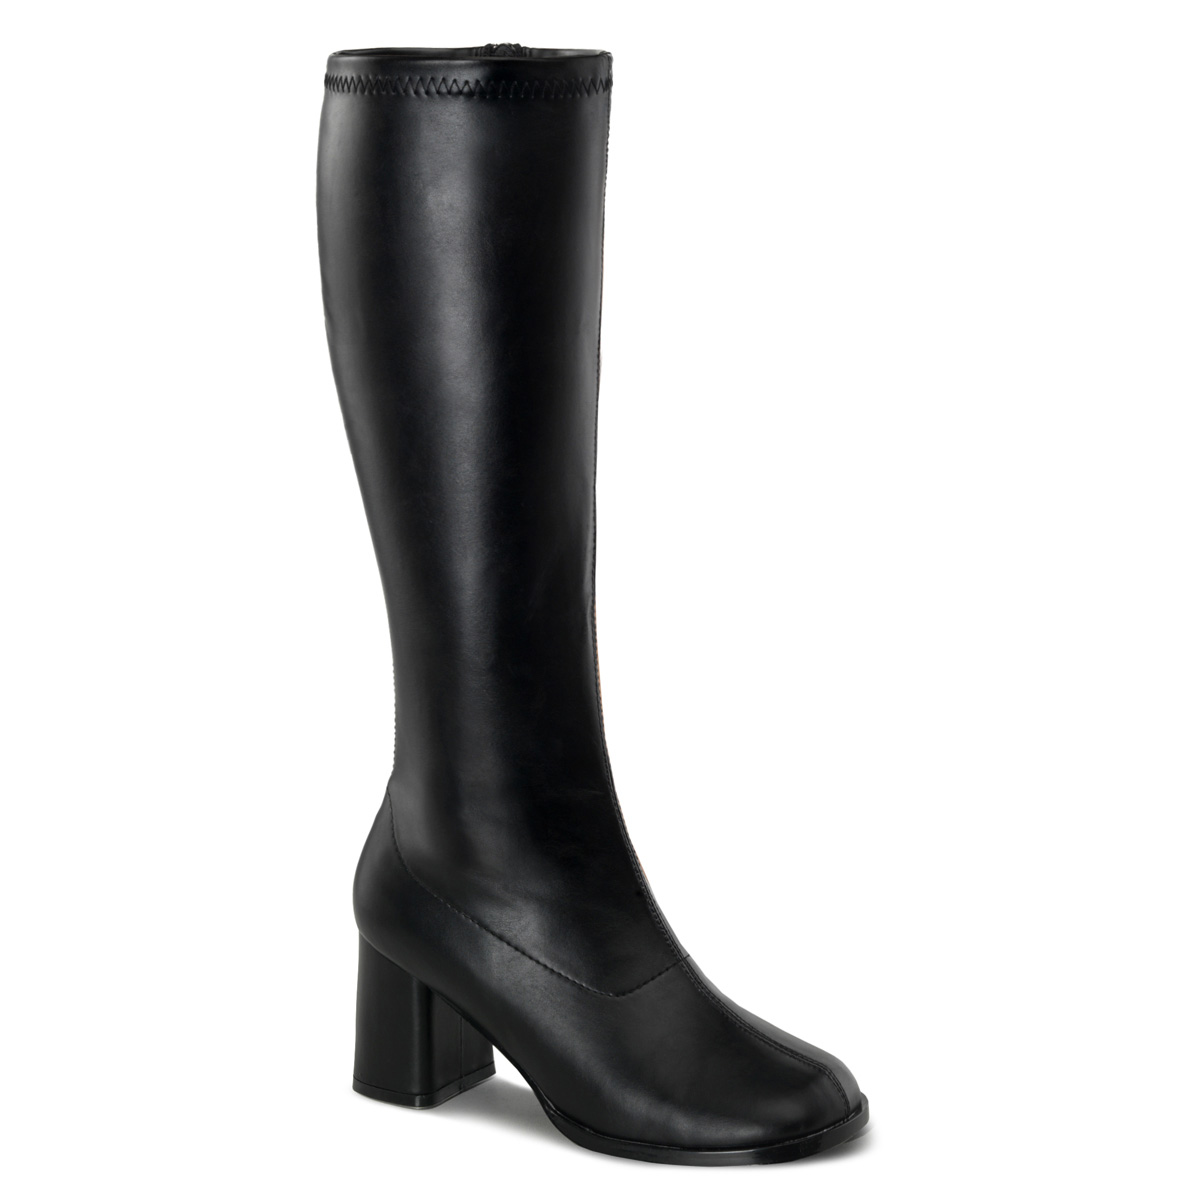 Funtasma by Pleaser Women's Gogo-300 Boot - Black Stretch Pu at Sears.com